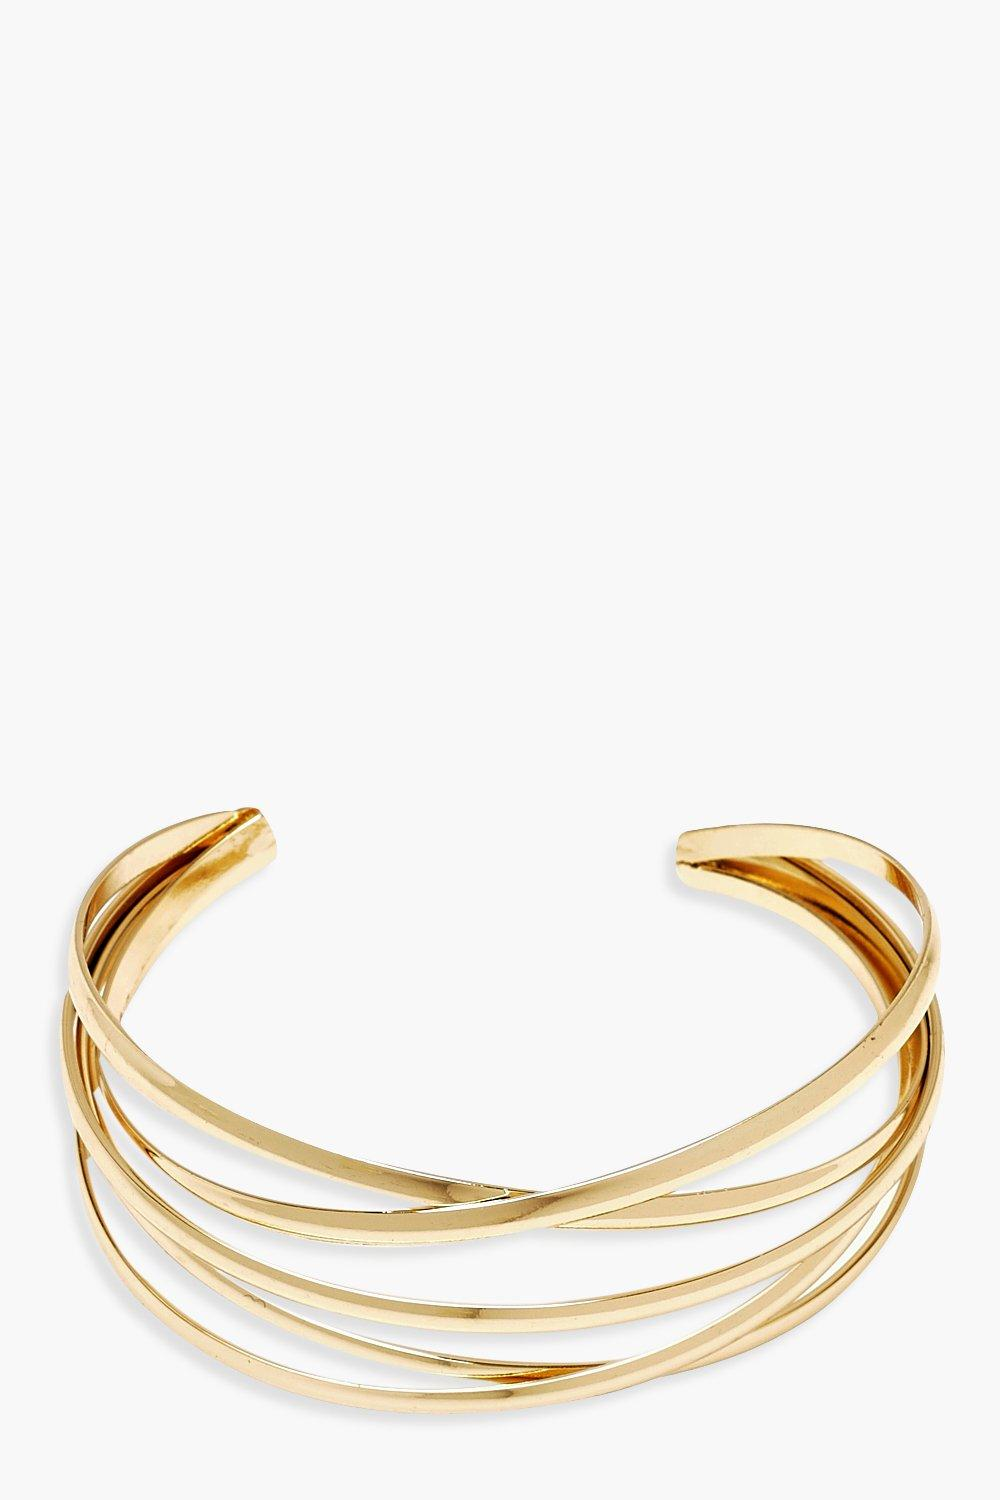 Plus Gold Bangle